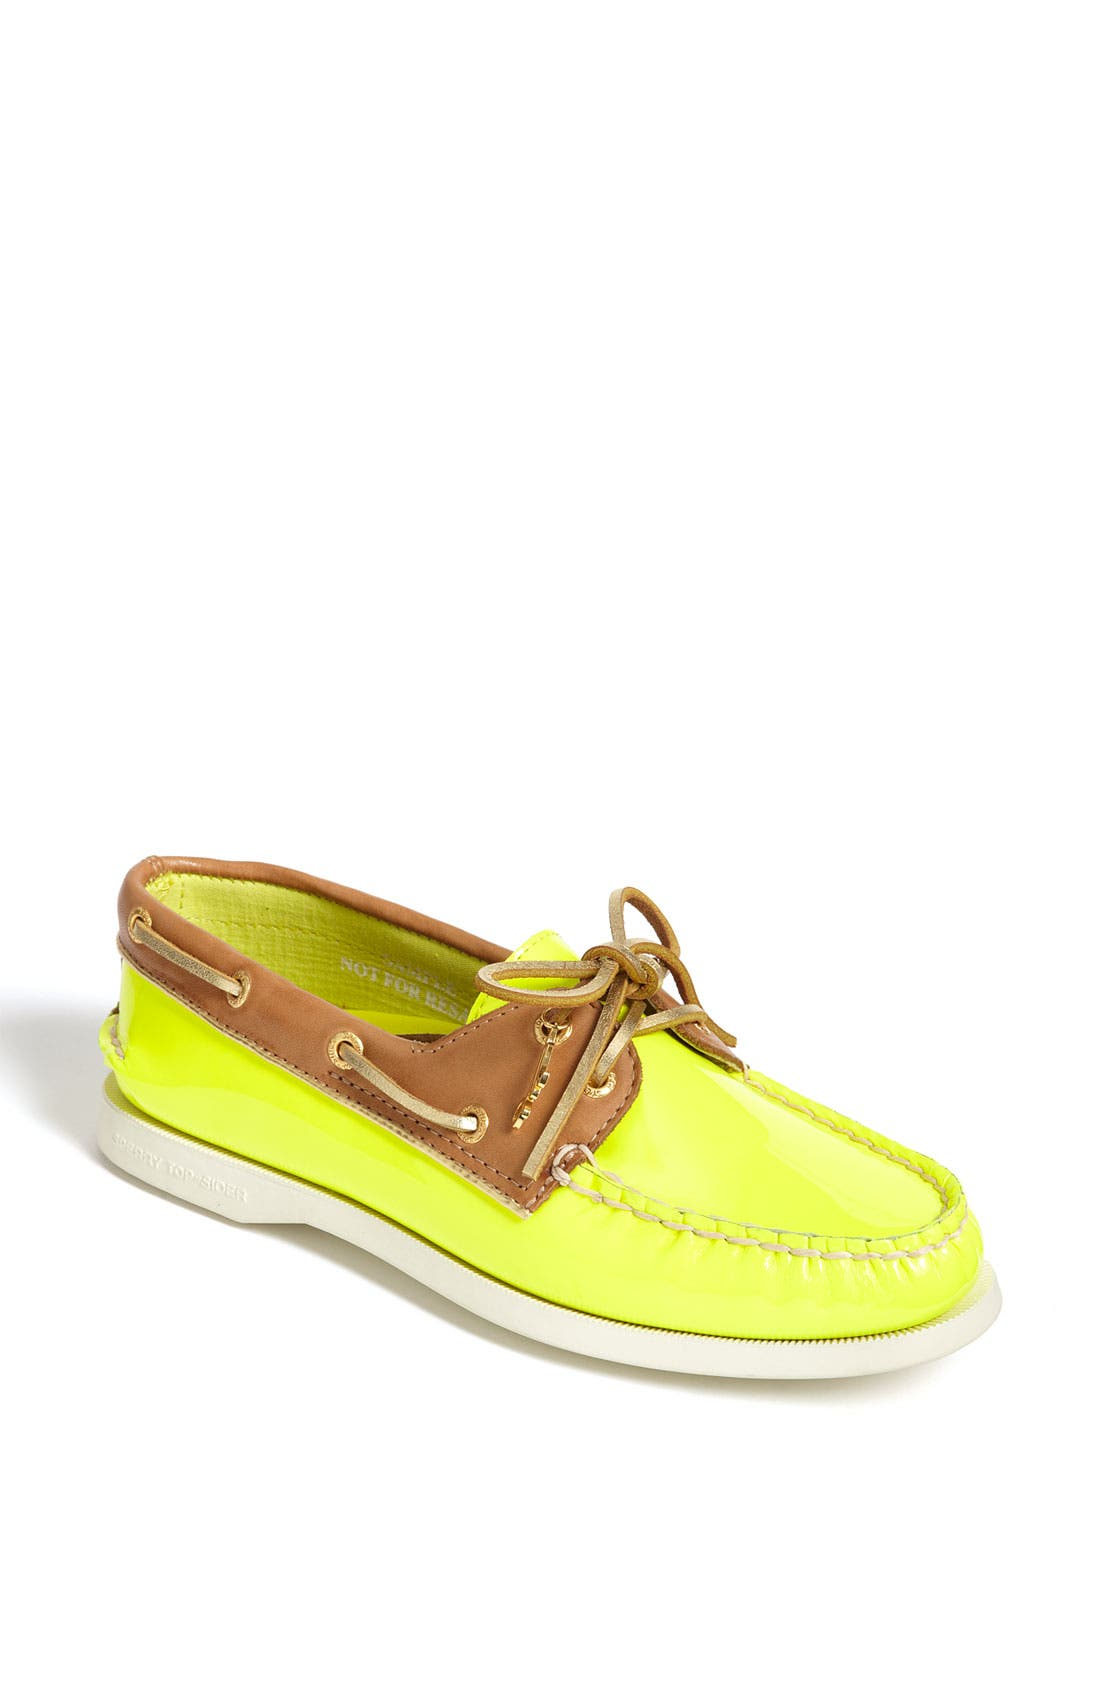 Main Image - Milly for Sperry Top-Sider® 'Authentic Original' Boat Shoe